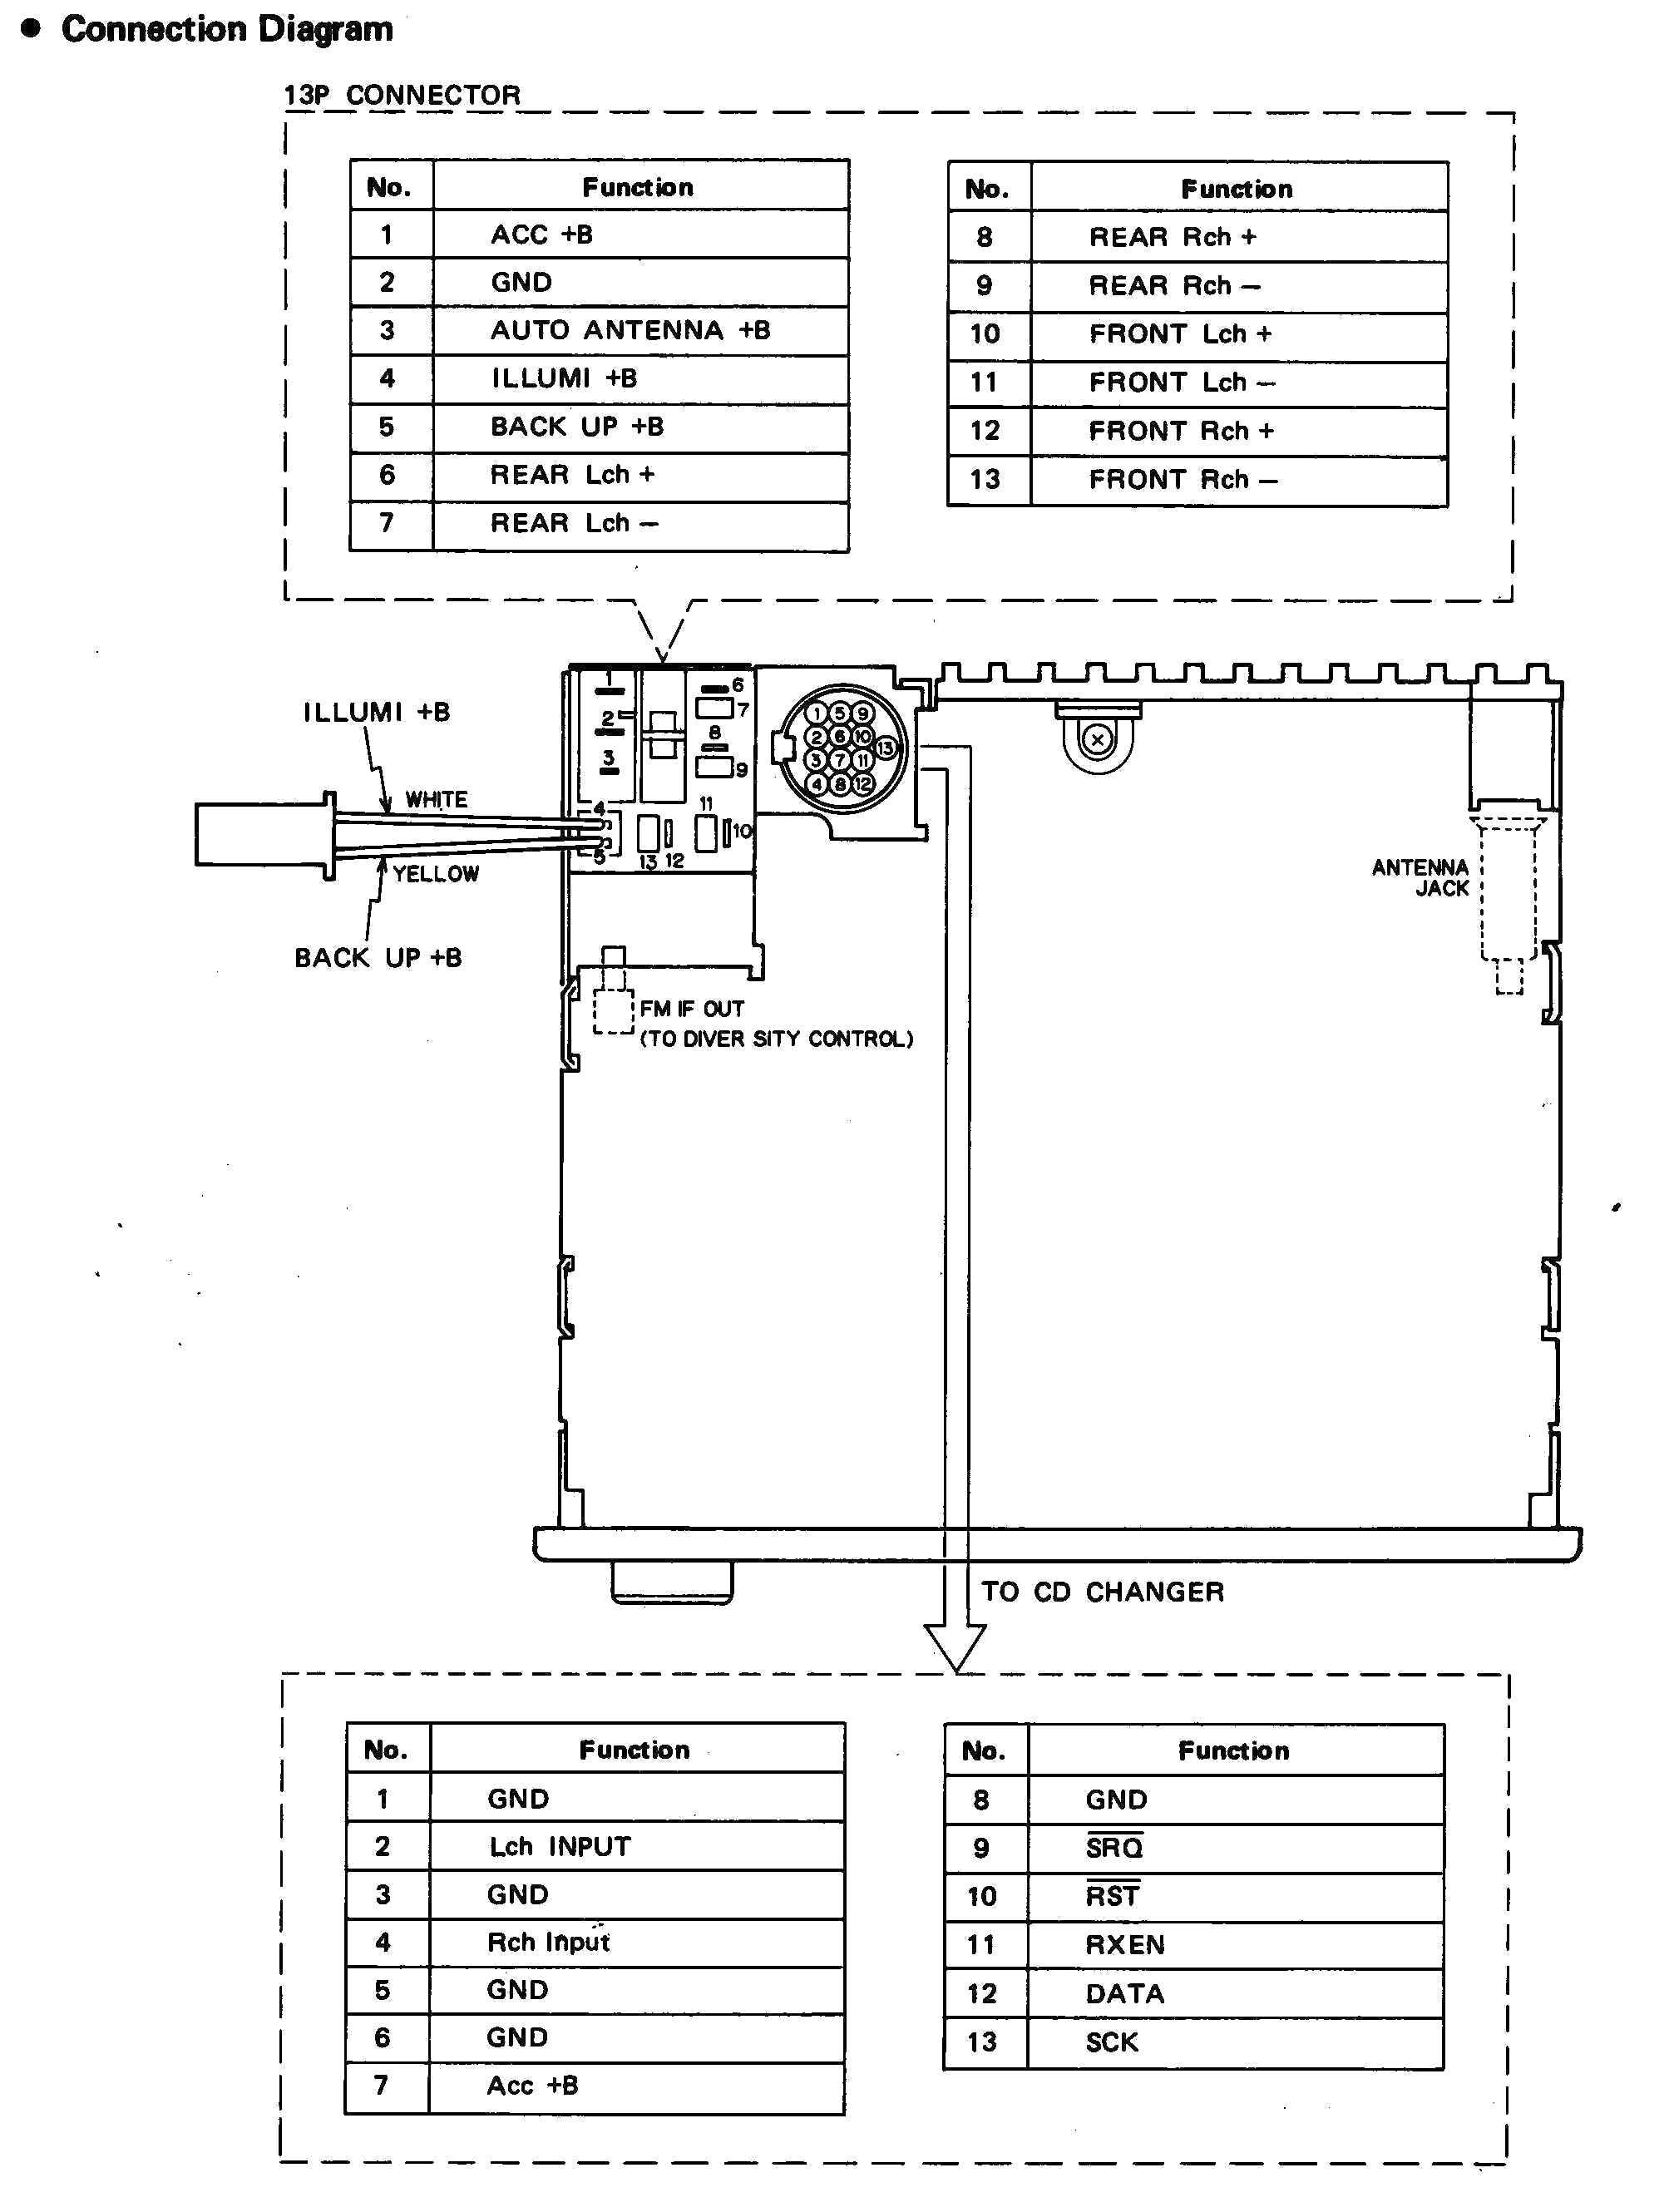 home speaker wiring diagram Download-home speaker wiring diagram Download Nissan navara d40 radio wiring diagram 9 s DOWNLOAD Wiring Diagram Pics Detail Name home speaker 20-n